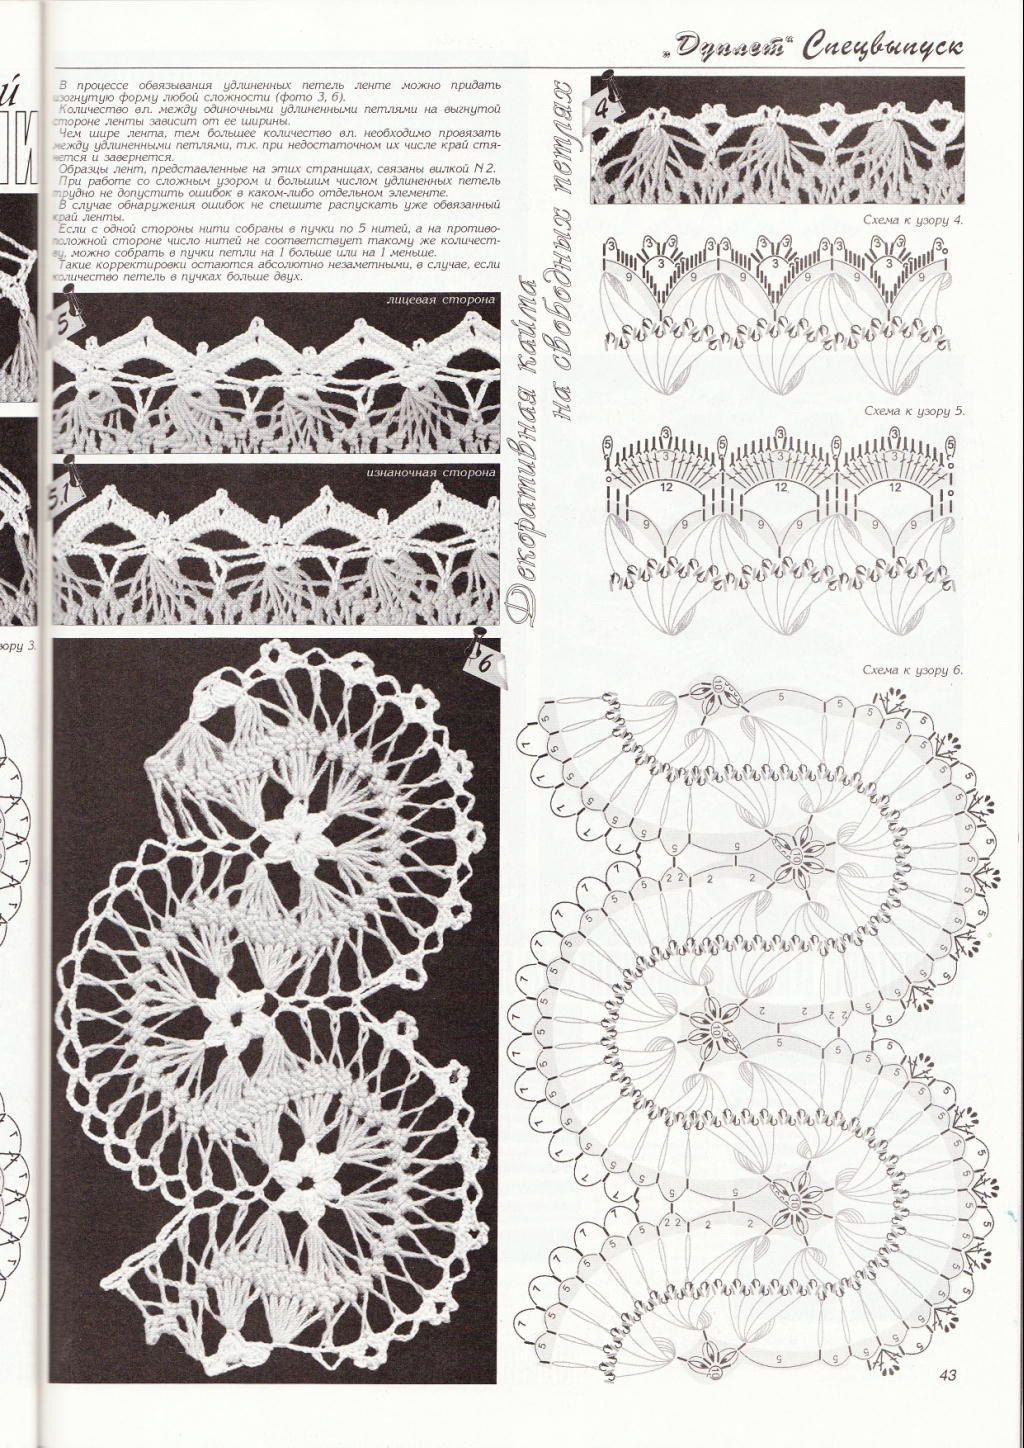 Hairpin lace pinteres items similar to hairpin lace stylish crochet patterns poncho cardigan shawl dress top book magazine duplet special 1 on etsy bankloansurffo Image collections